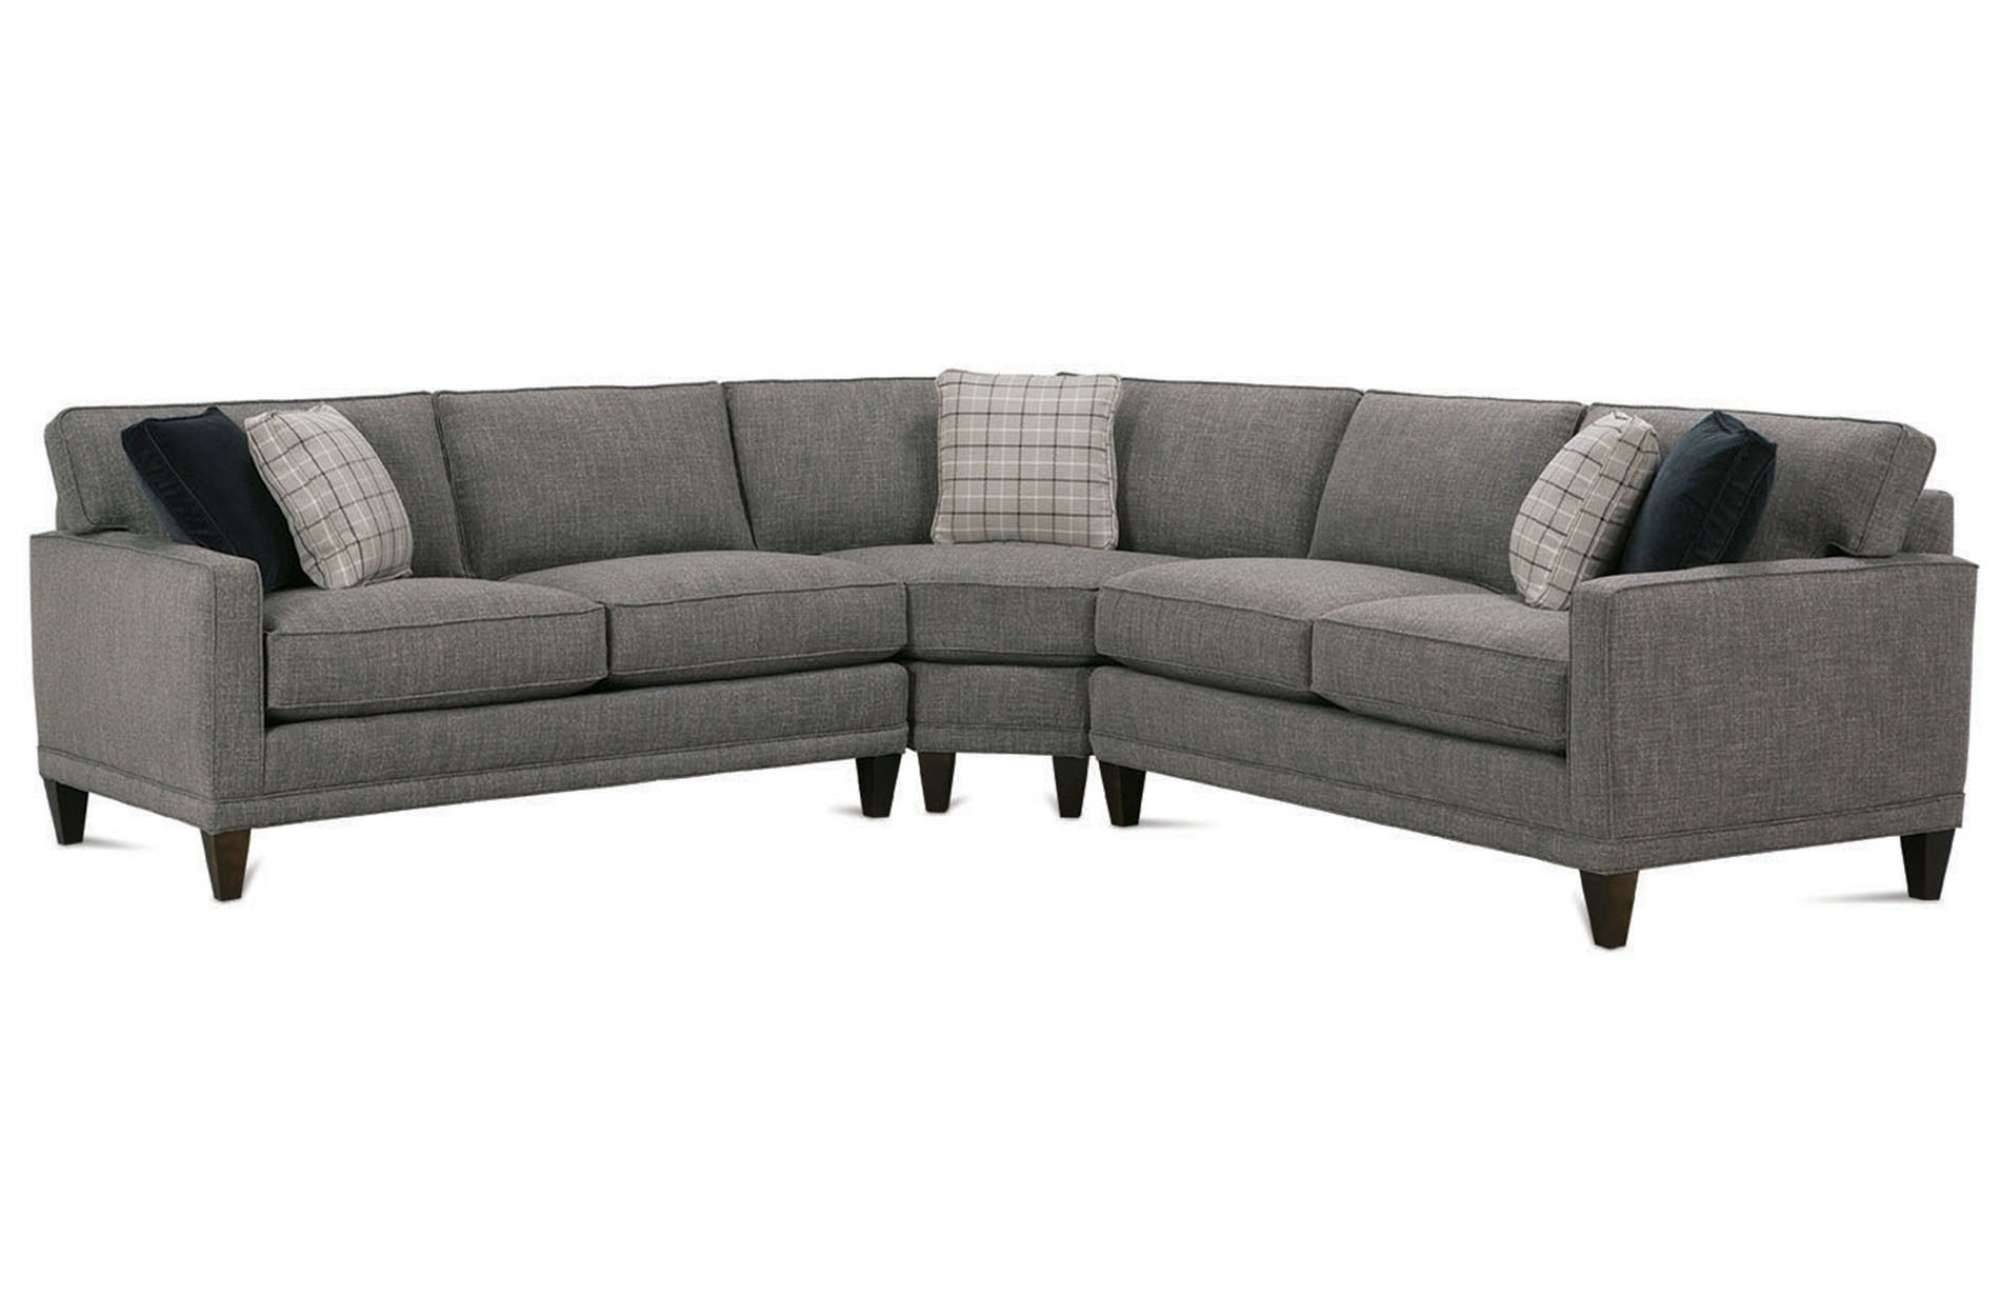 Townsend Sectionalrowe Furniture pertaining to Rowe Sectional Sofas (Image 15 of 15)